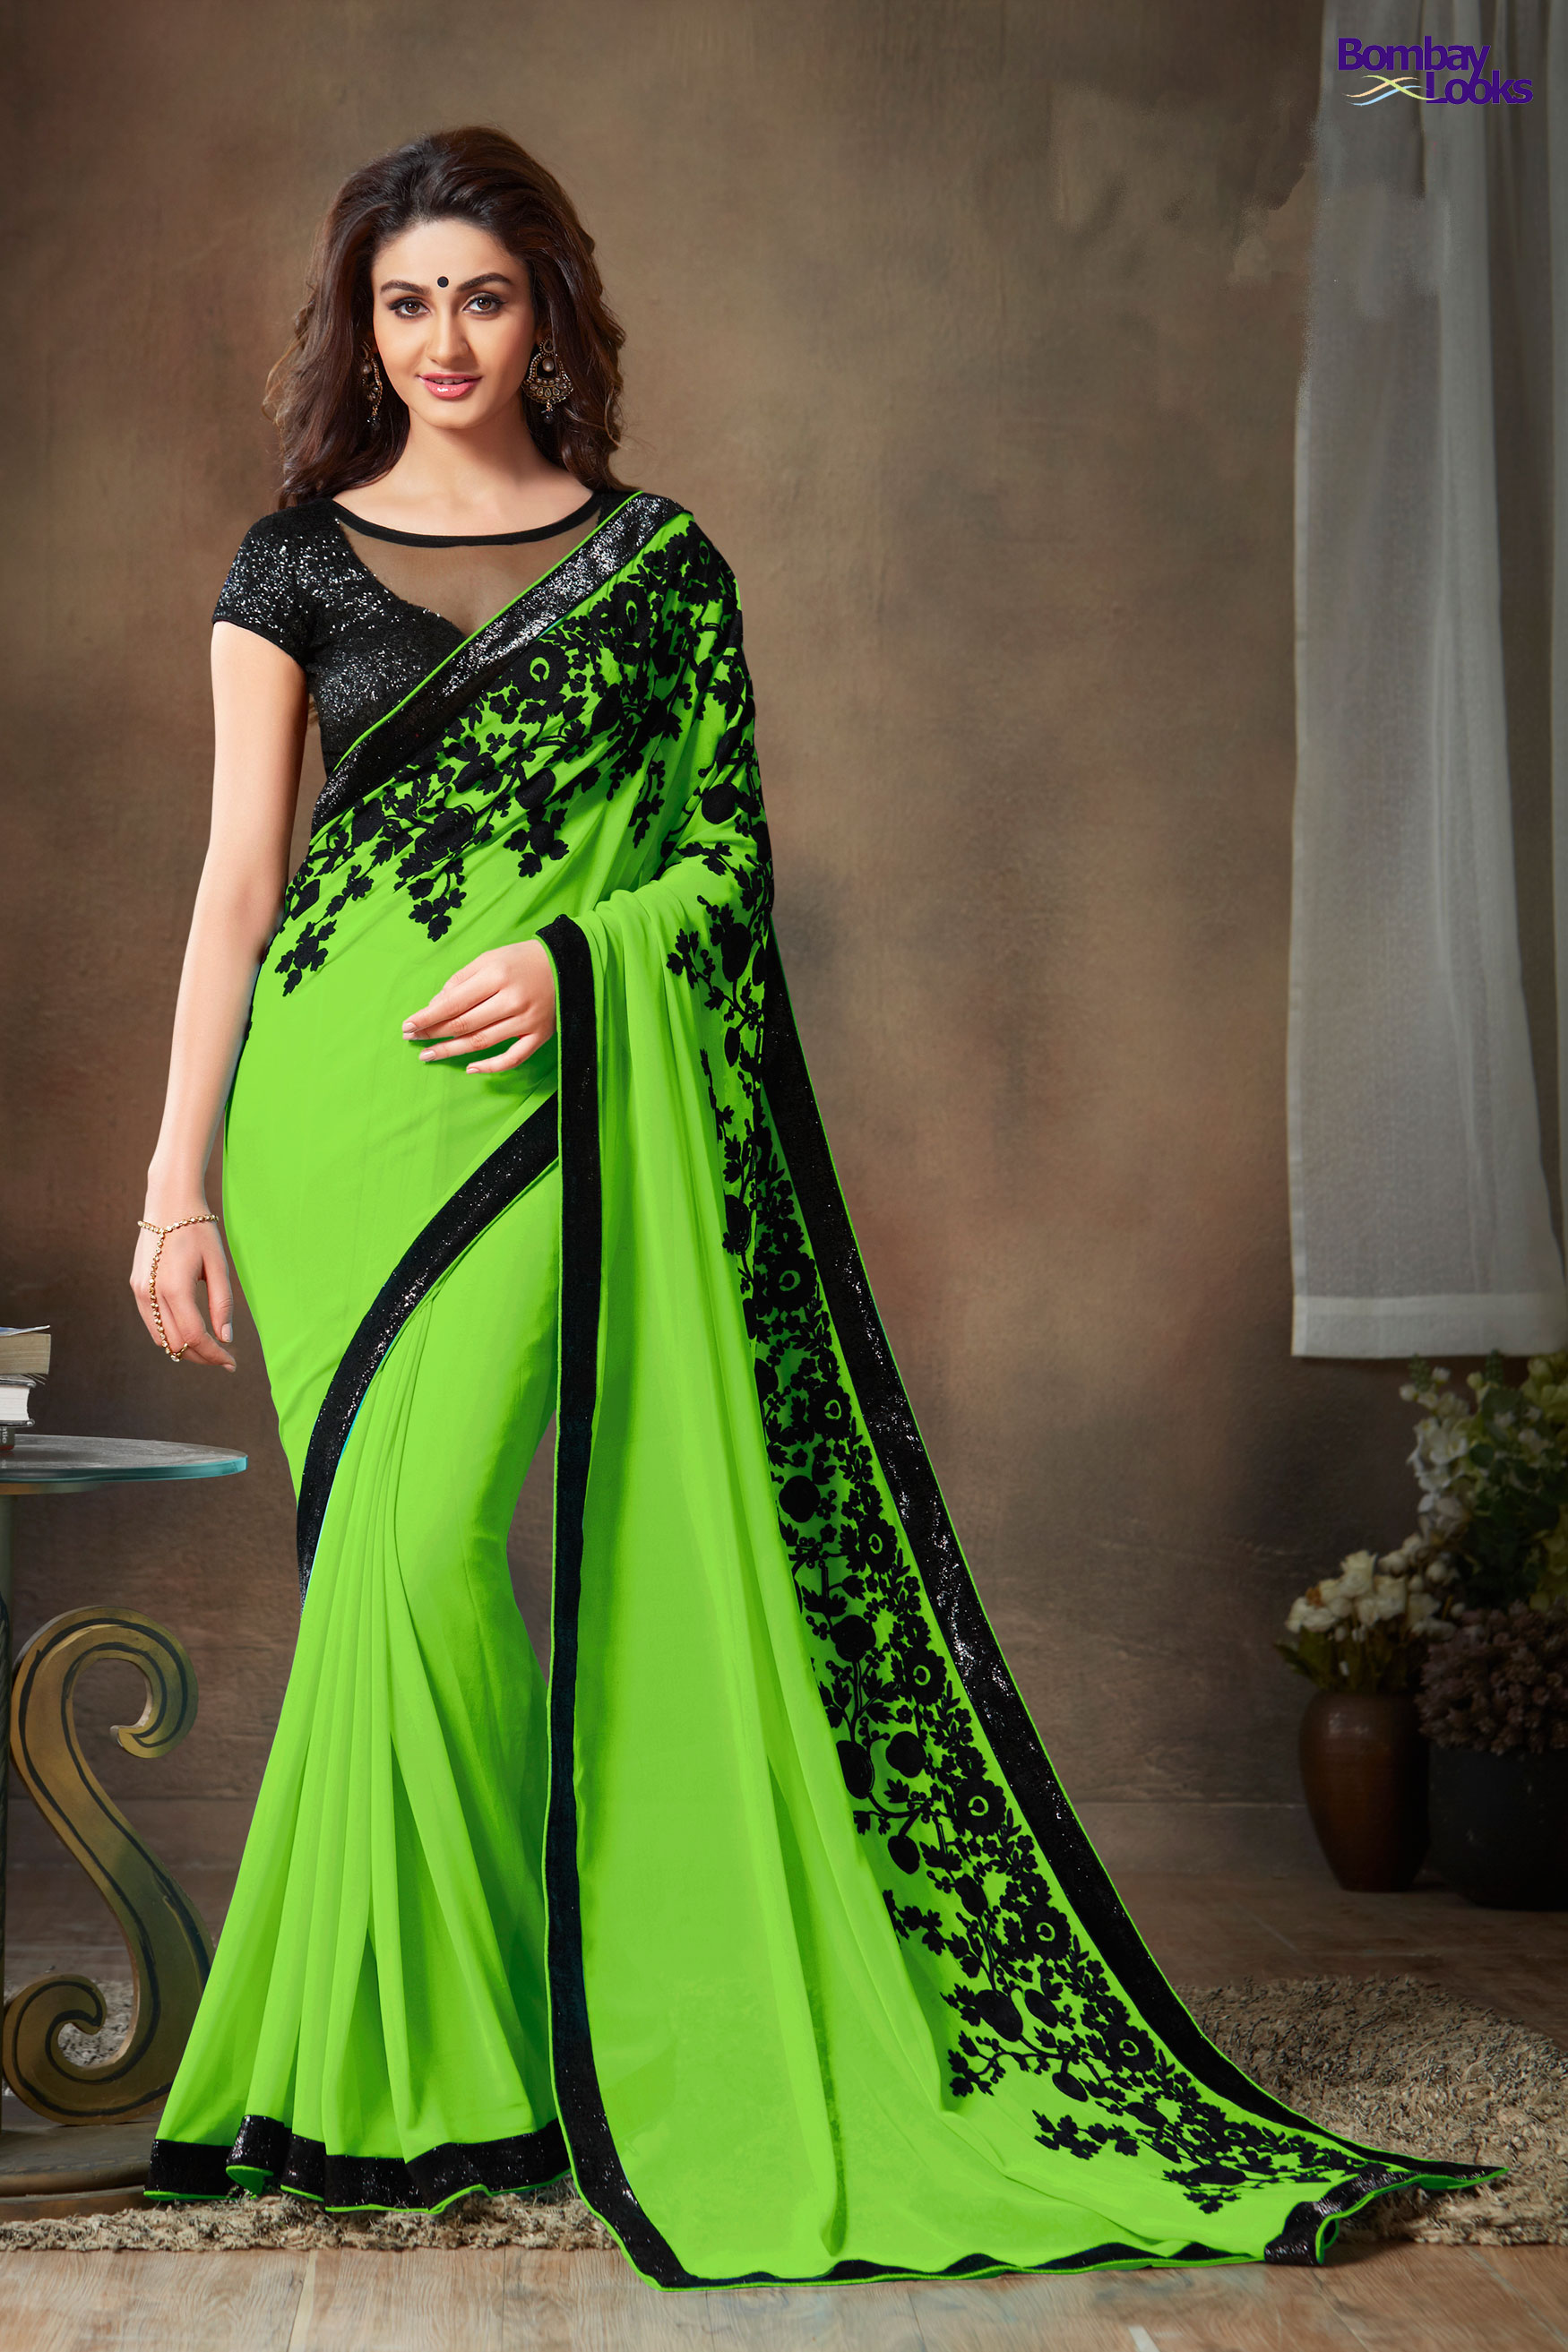 Sarees stylish advise to wear for spring in 2019